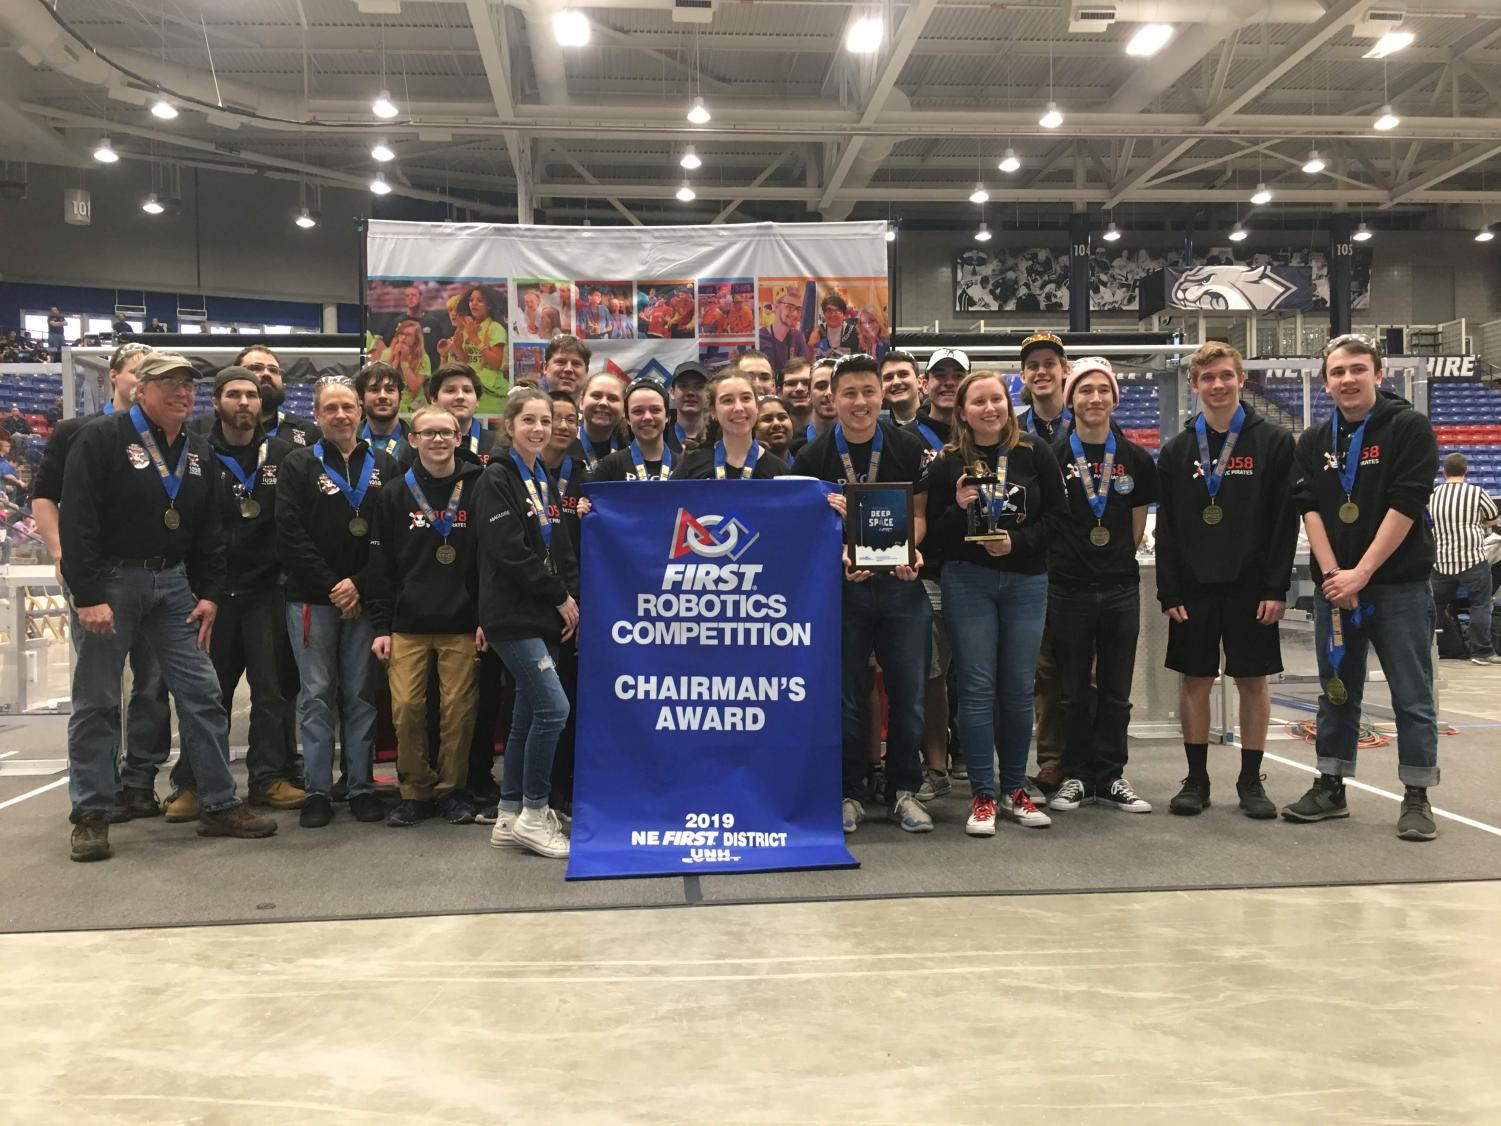 The robotics team poses with The Chairman's Award, after winning it at their last competition.